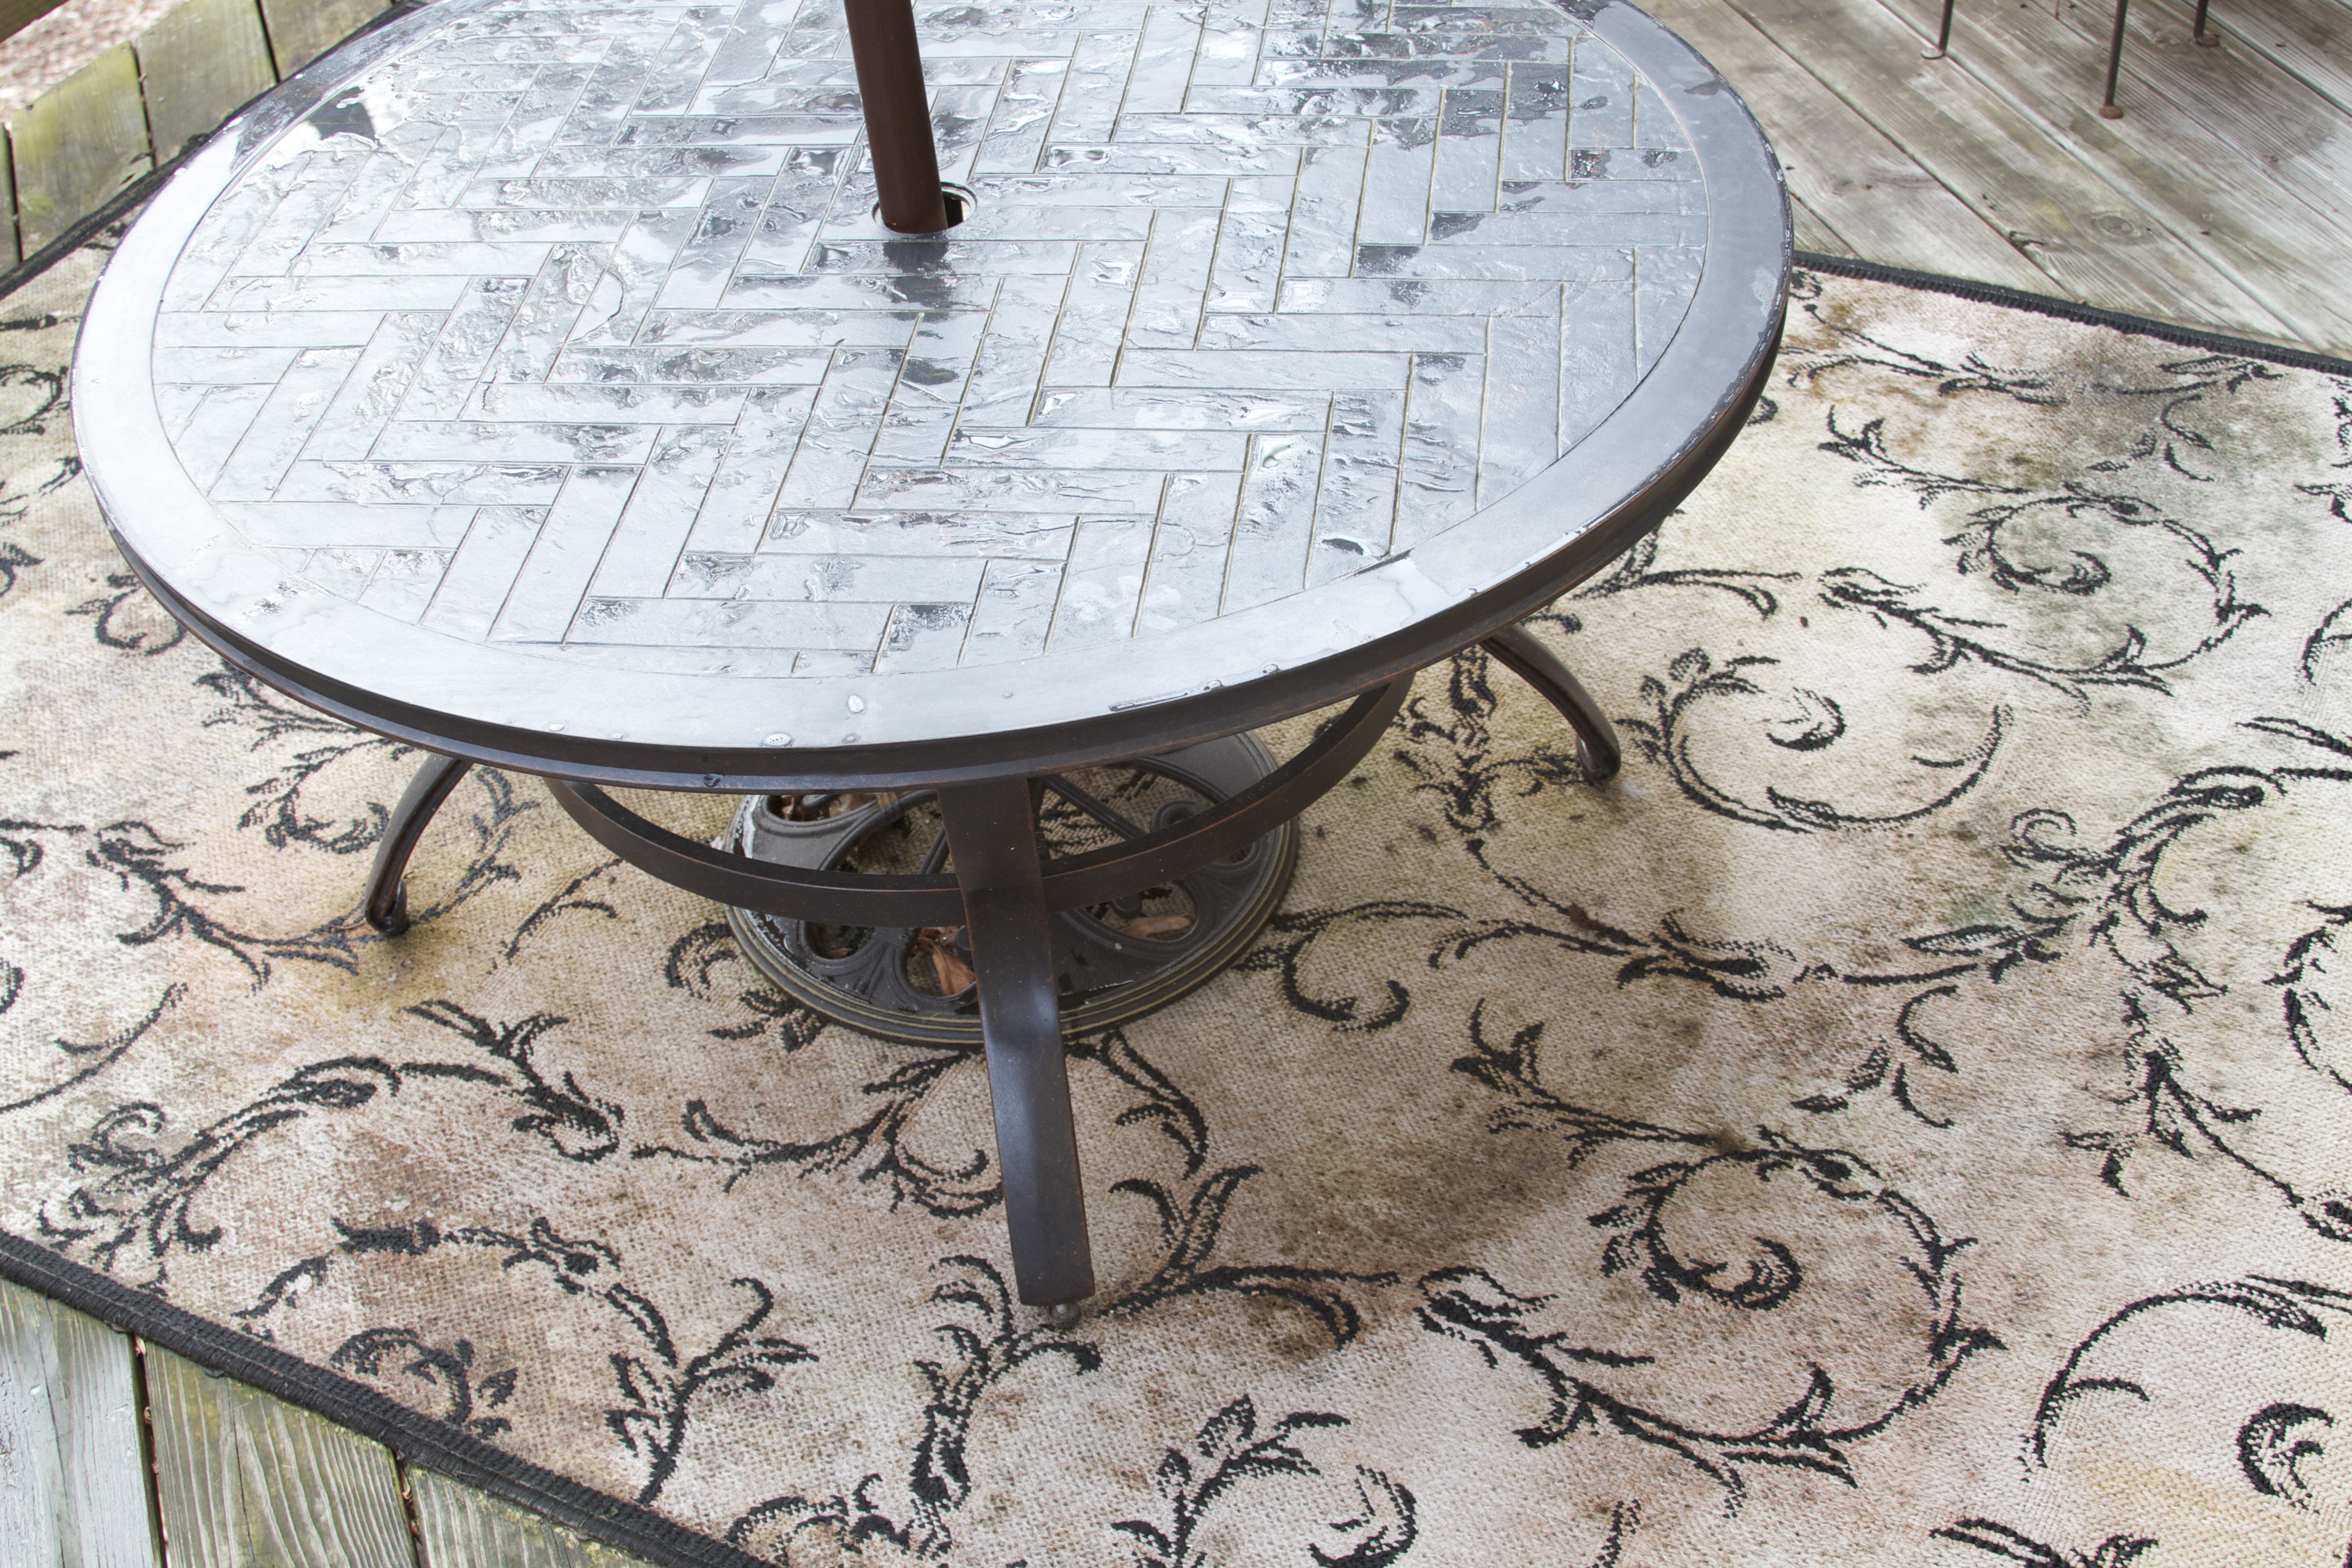 How To Clean Mold And Mildew From An Outdoor Rug